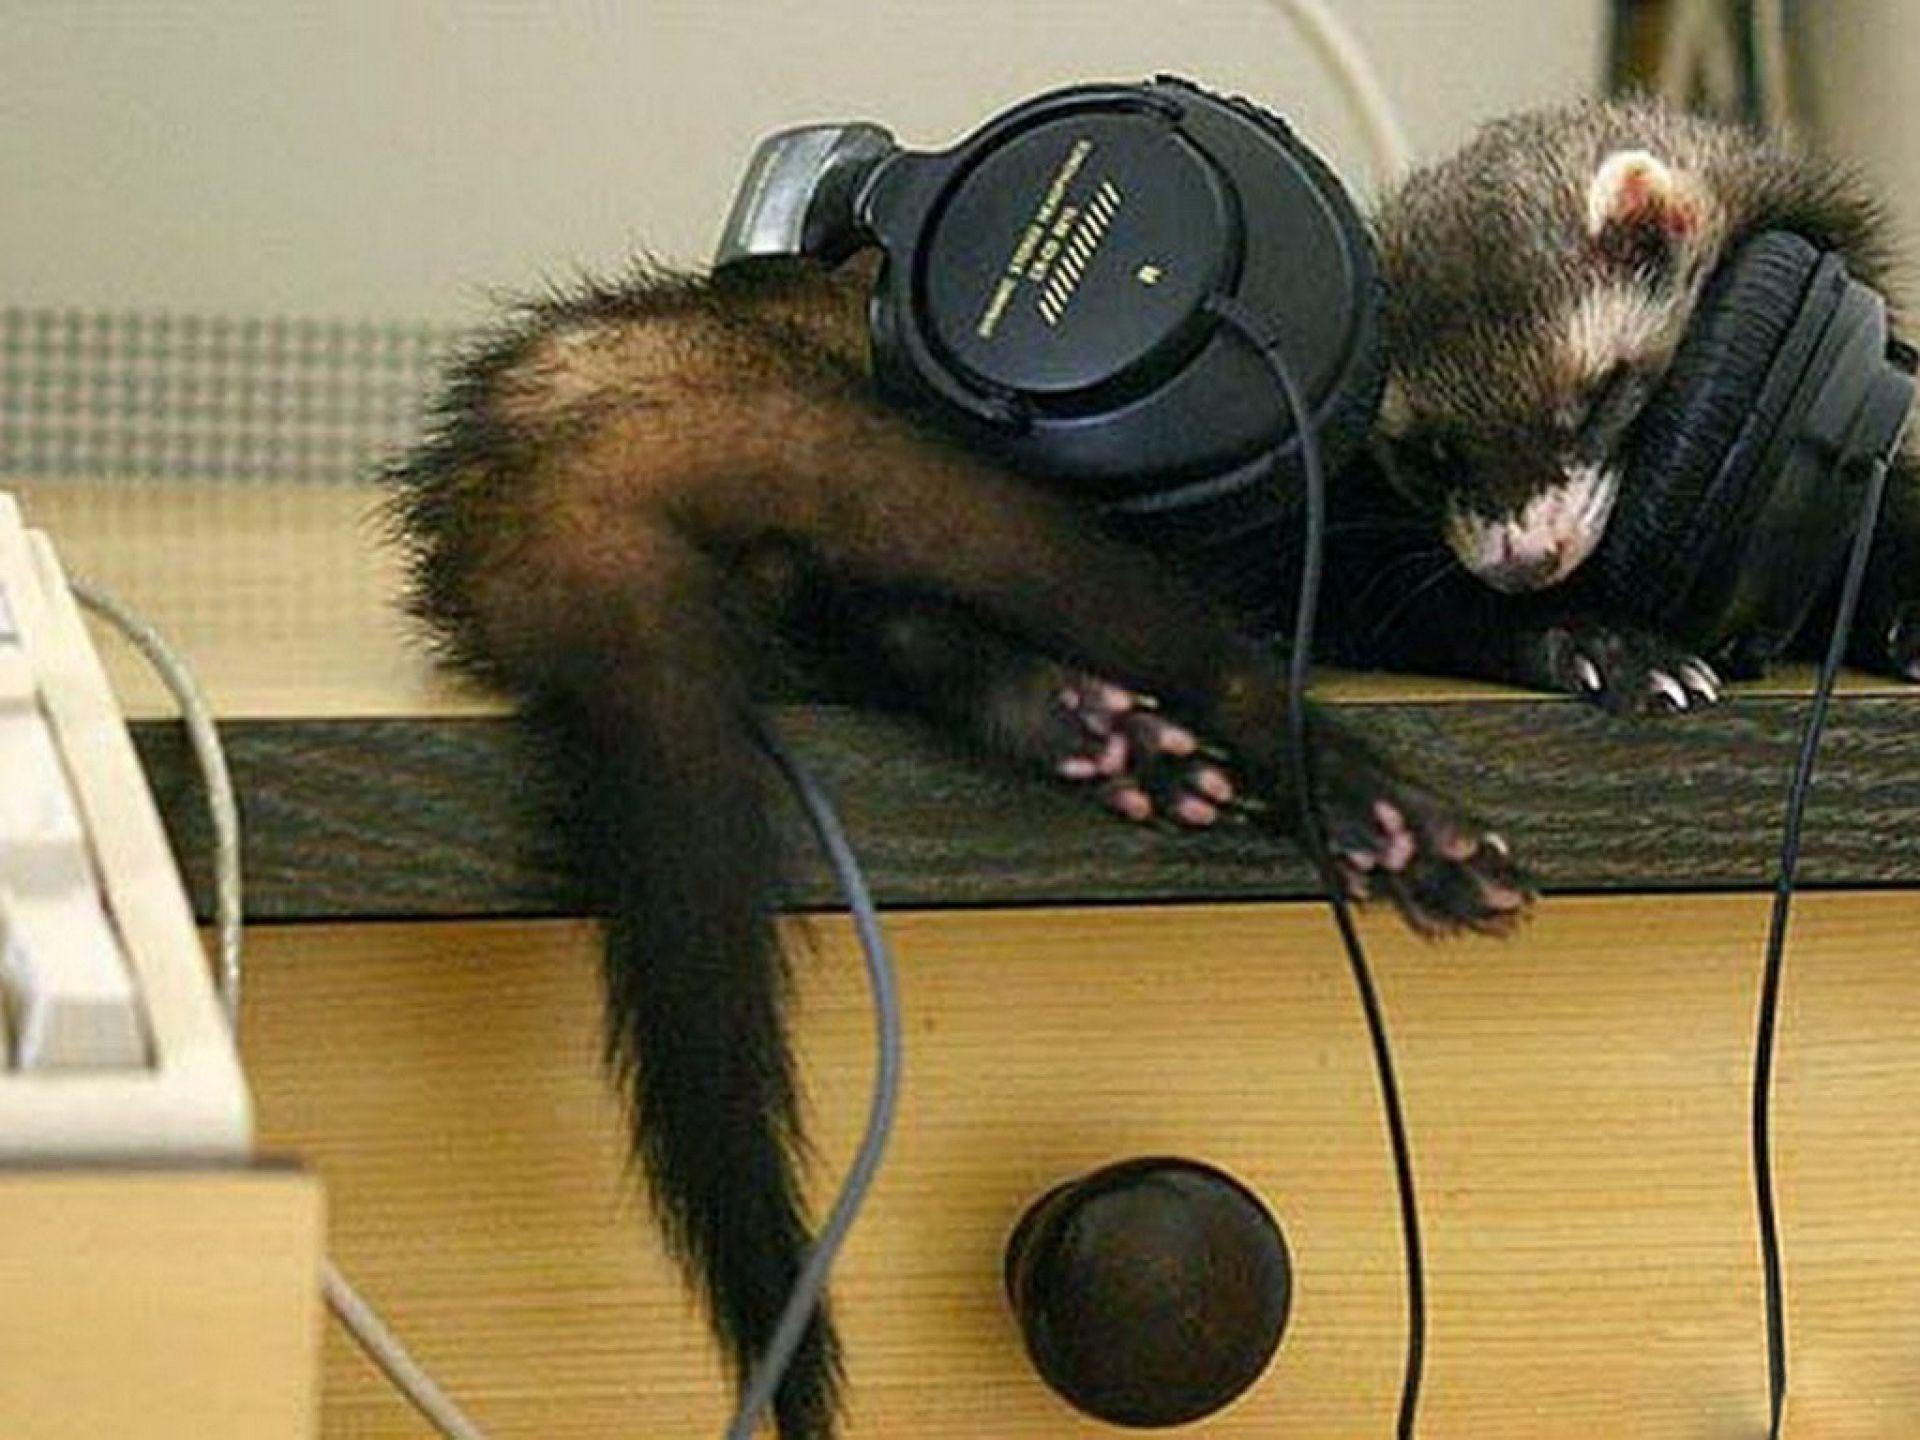 Headphones are too big for the ferret.